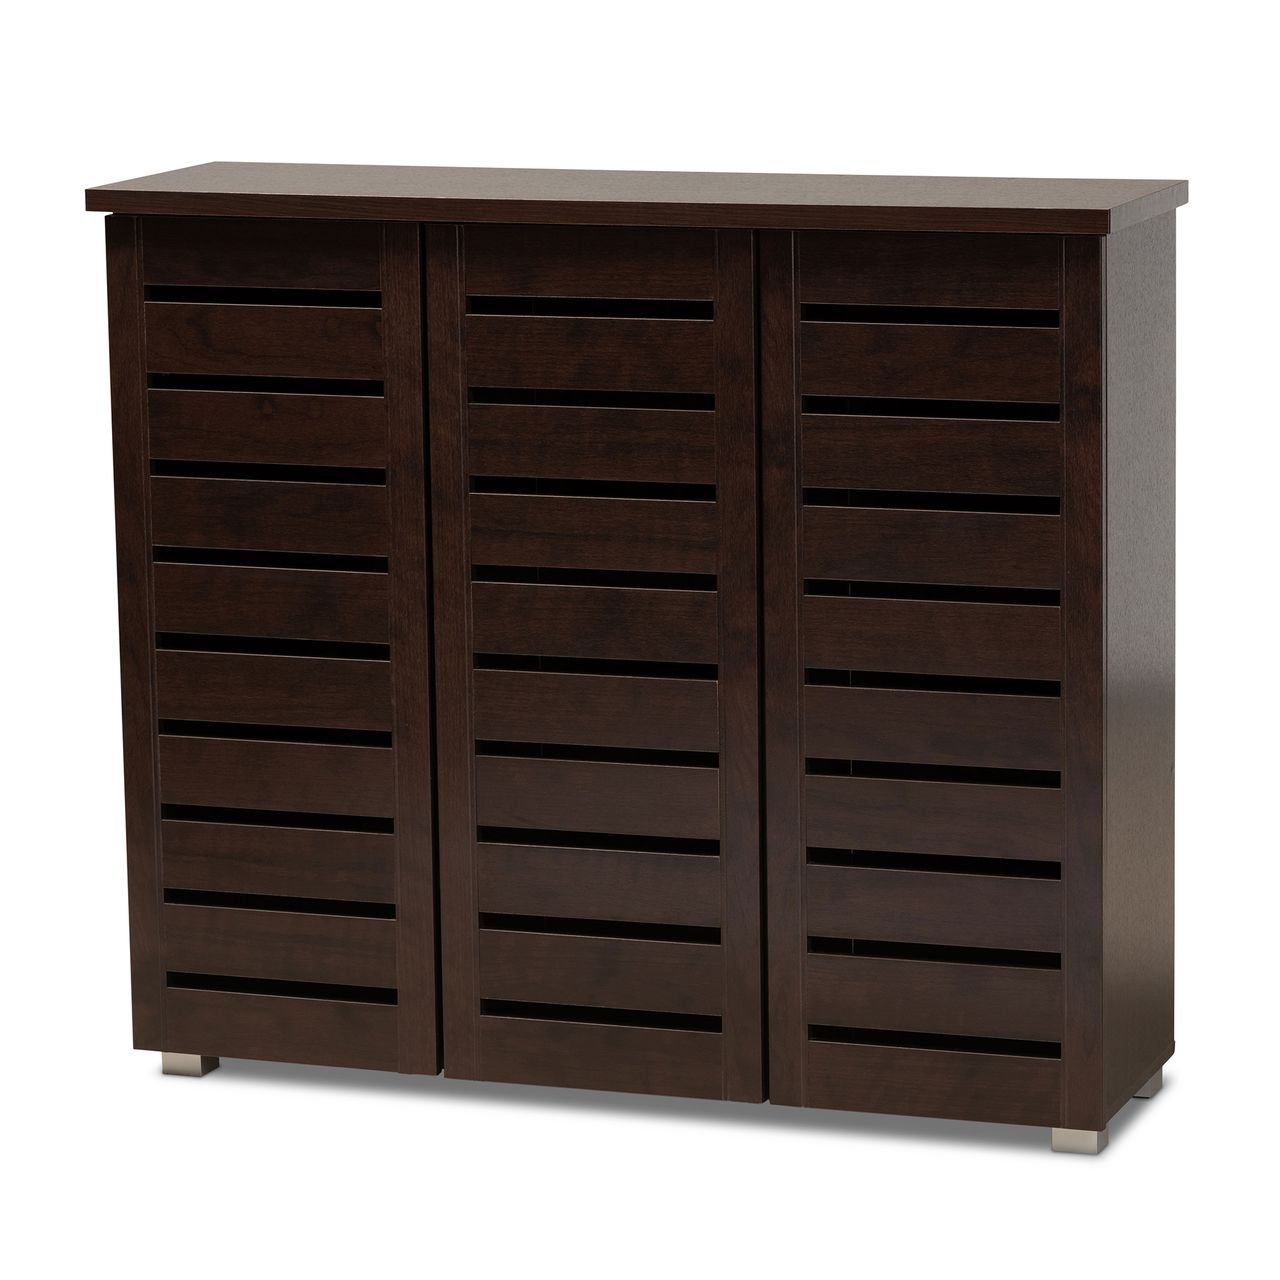 Baxton Studio Adalwin 3-Door Dark Brown Entryway Shoes Storage Cabinet